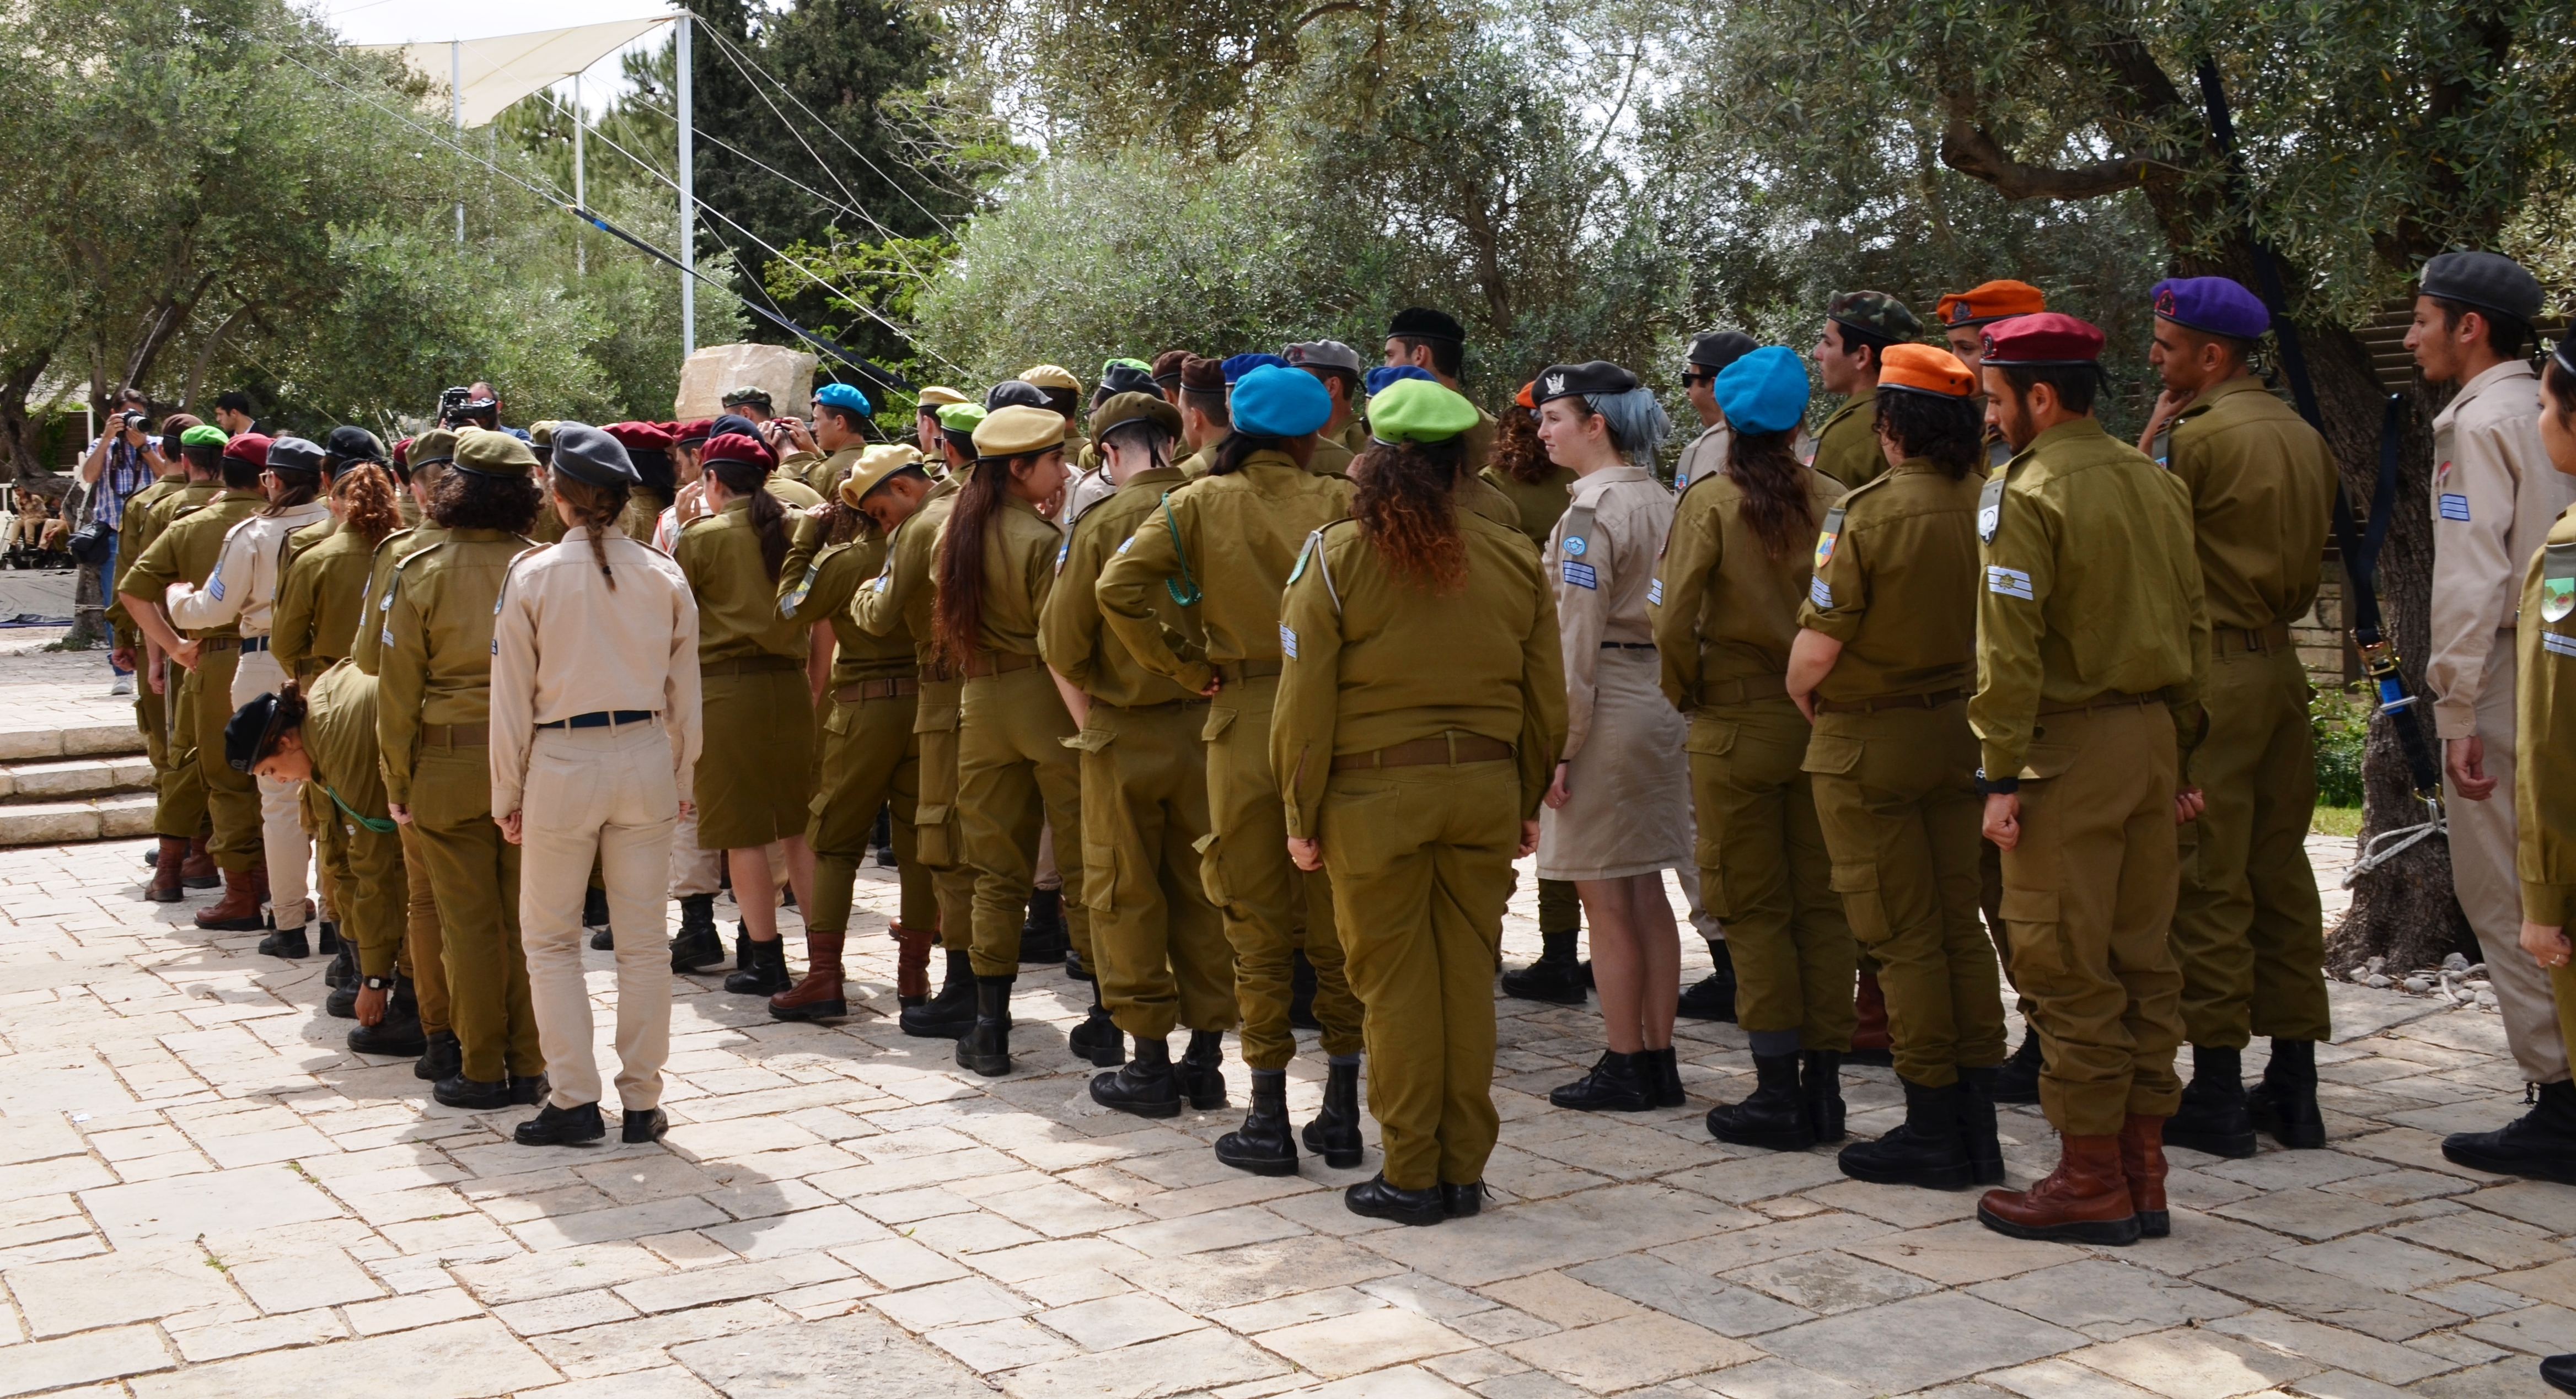 soliders being honored Beit Hanasi Jerusalem Israel